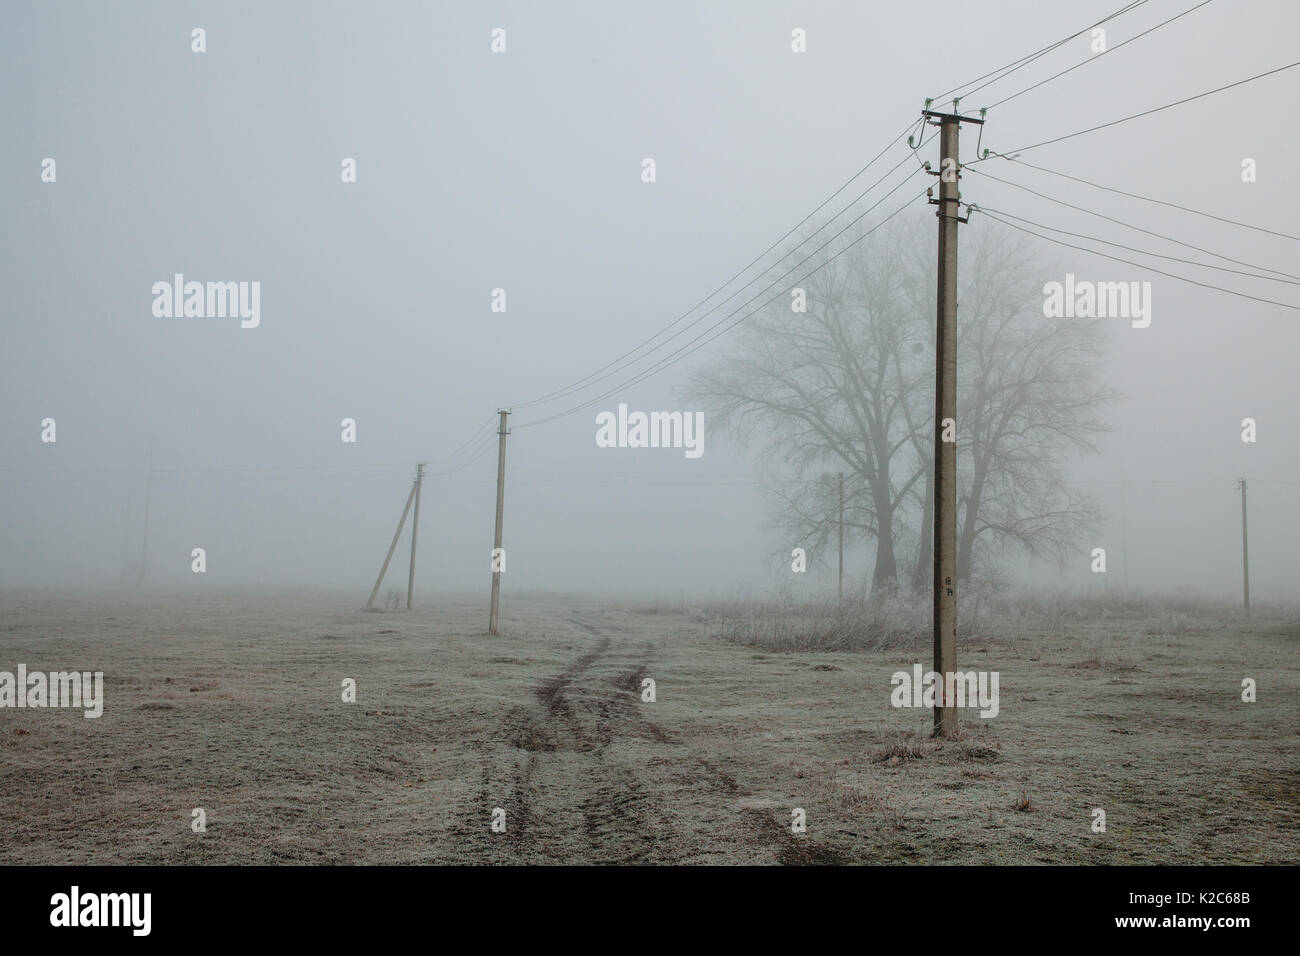 Foggy landscape with power lines rustic field background, frost on the ground, noise film effect - Stock Image